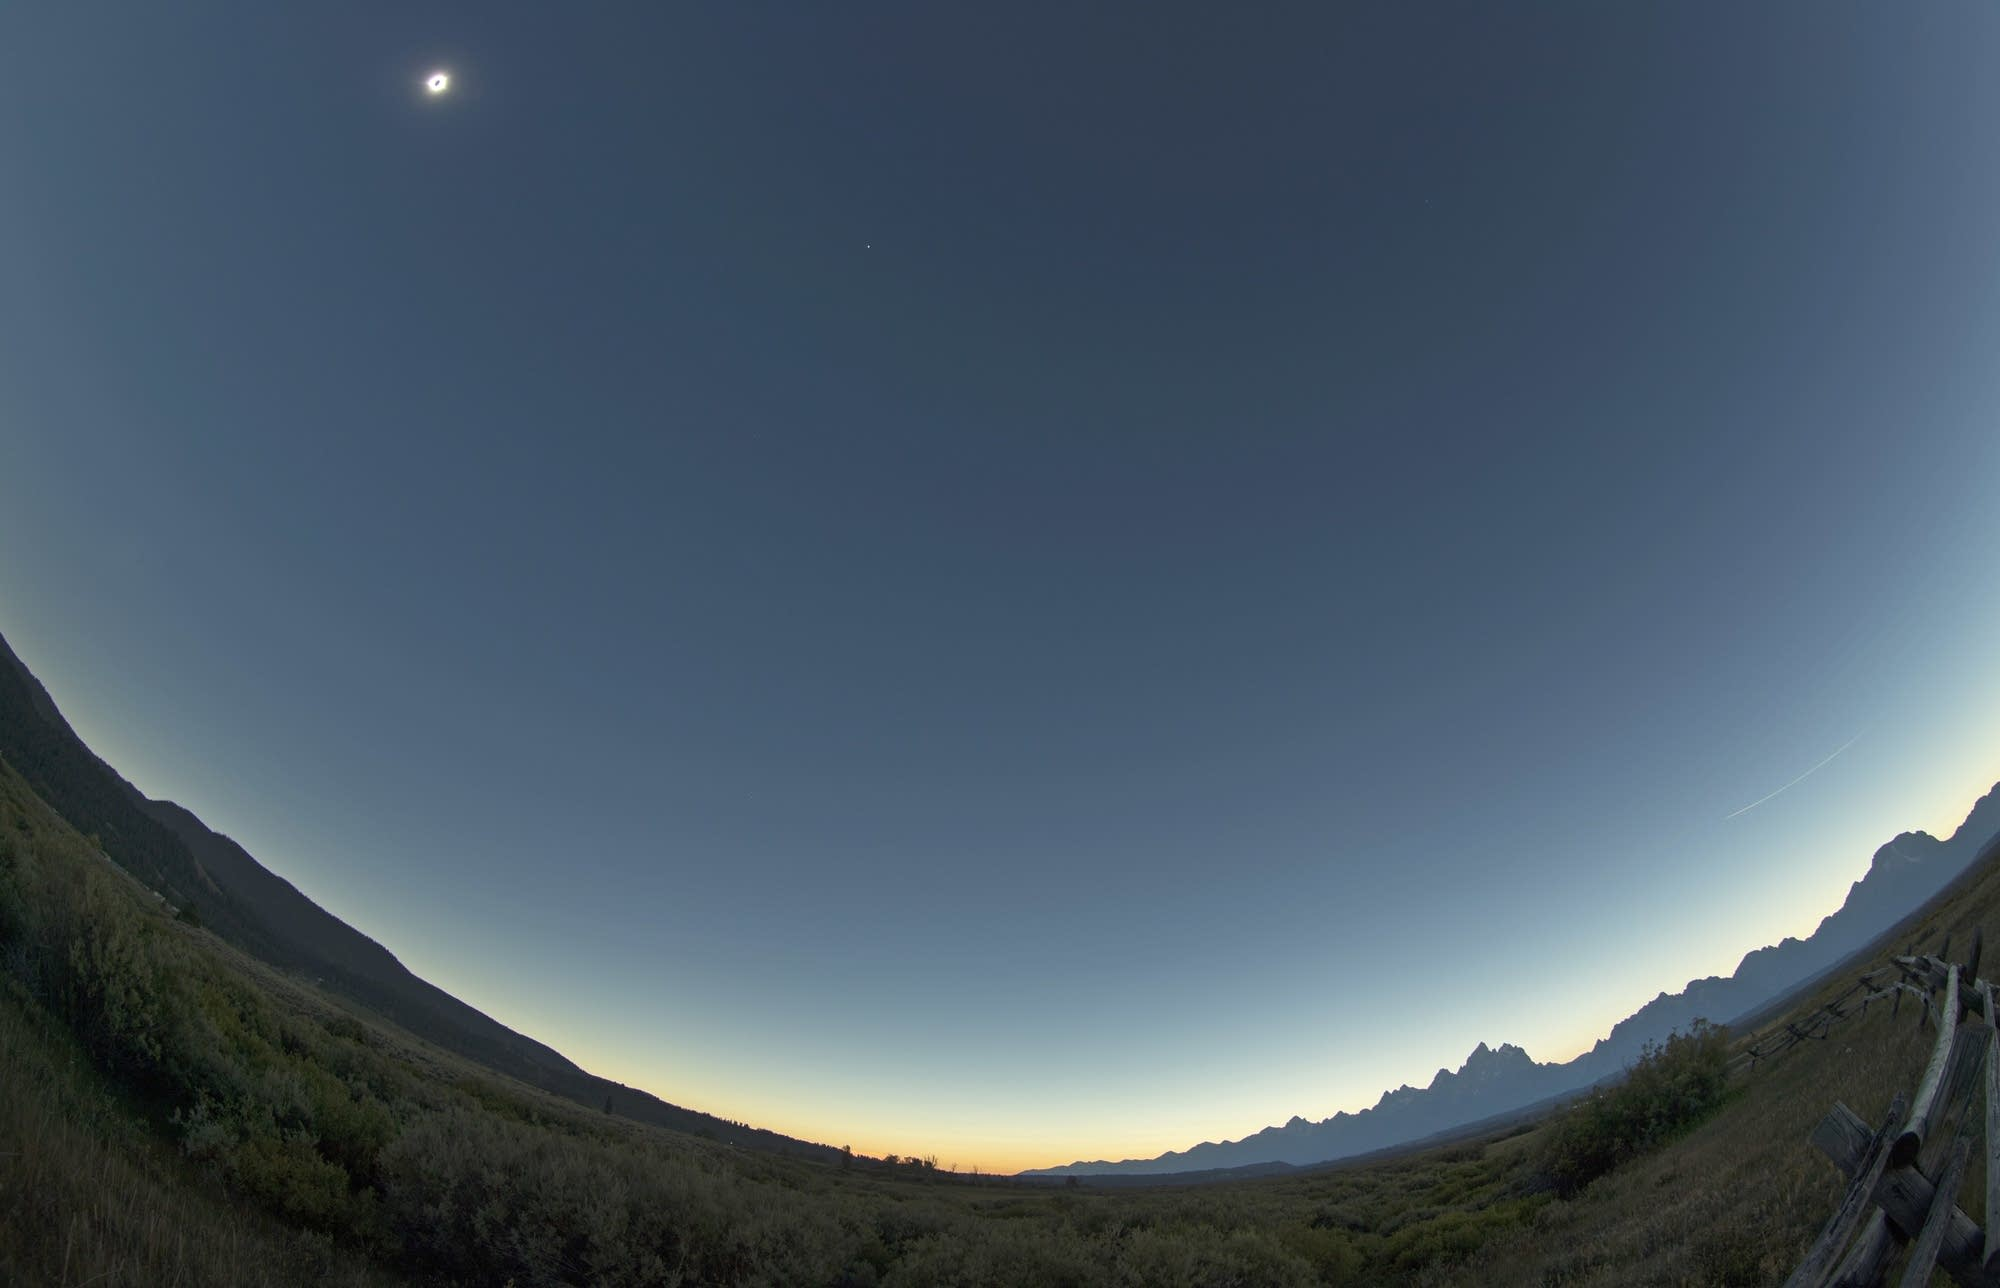 The sun is in full eclipse over Grand Teton National Park.